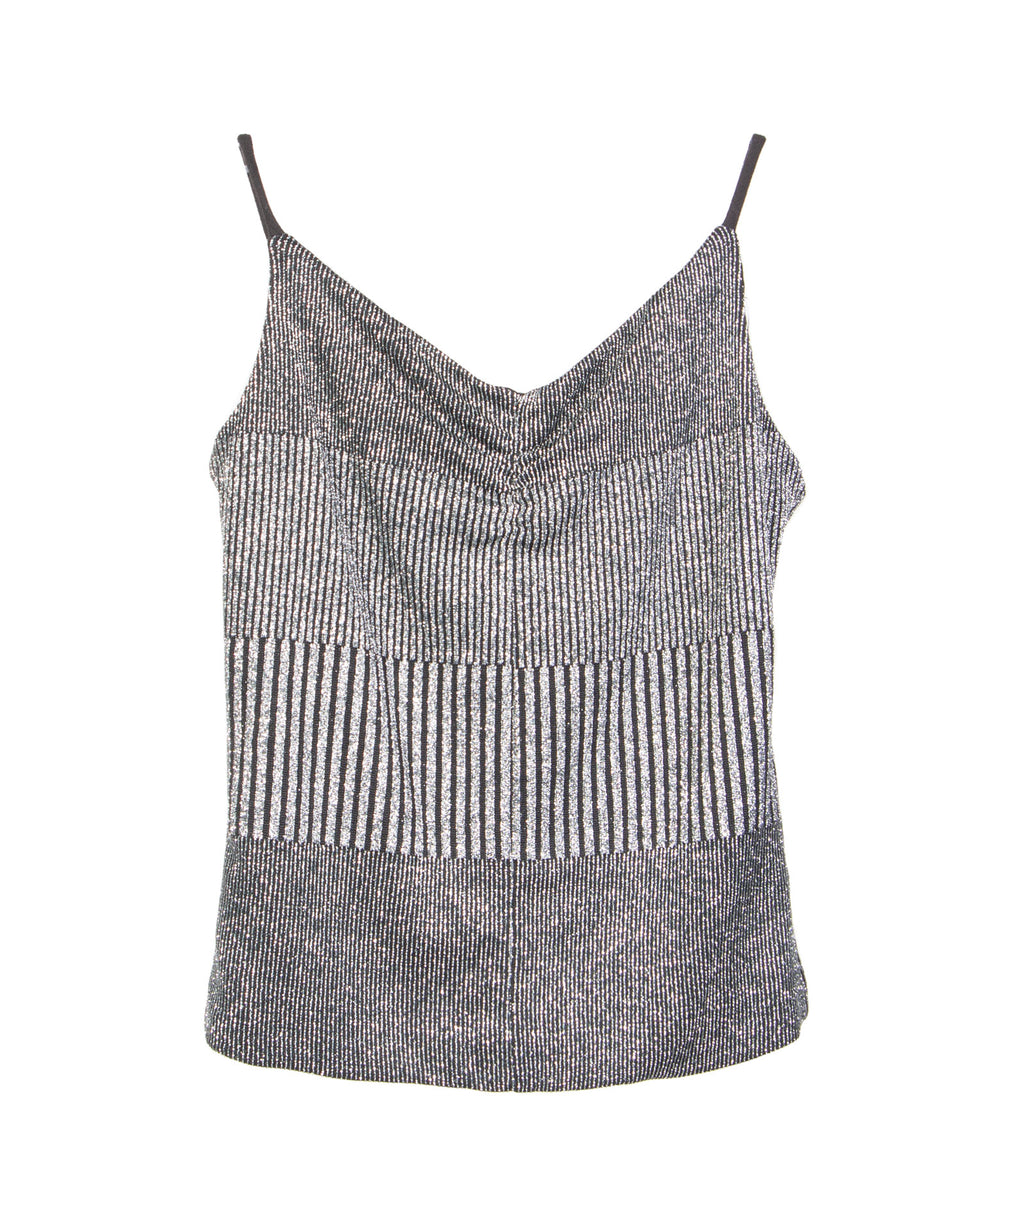 By Debra Girls Silver Sparkle Tank